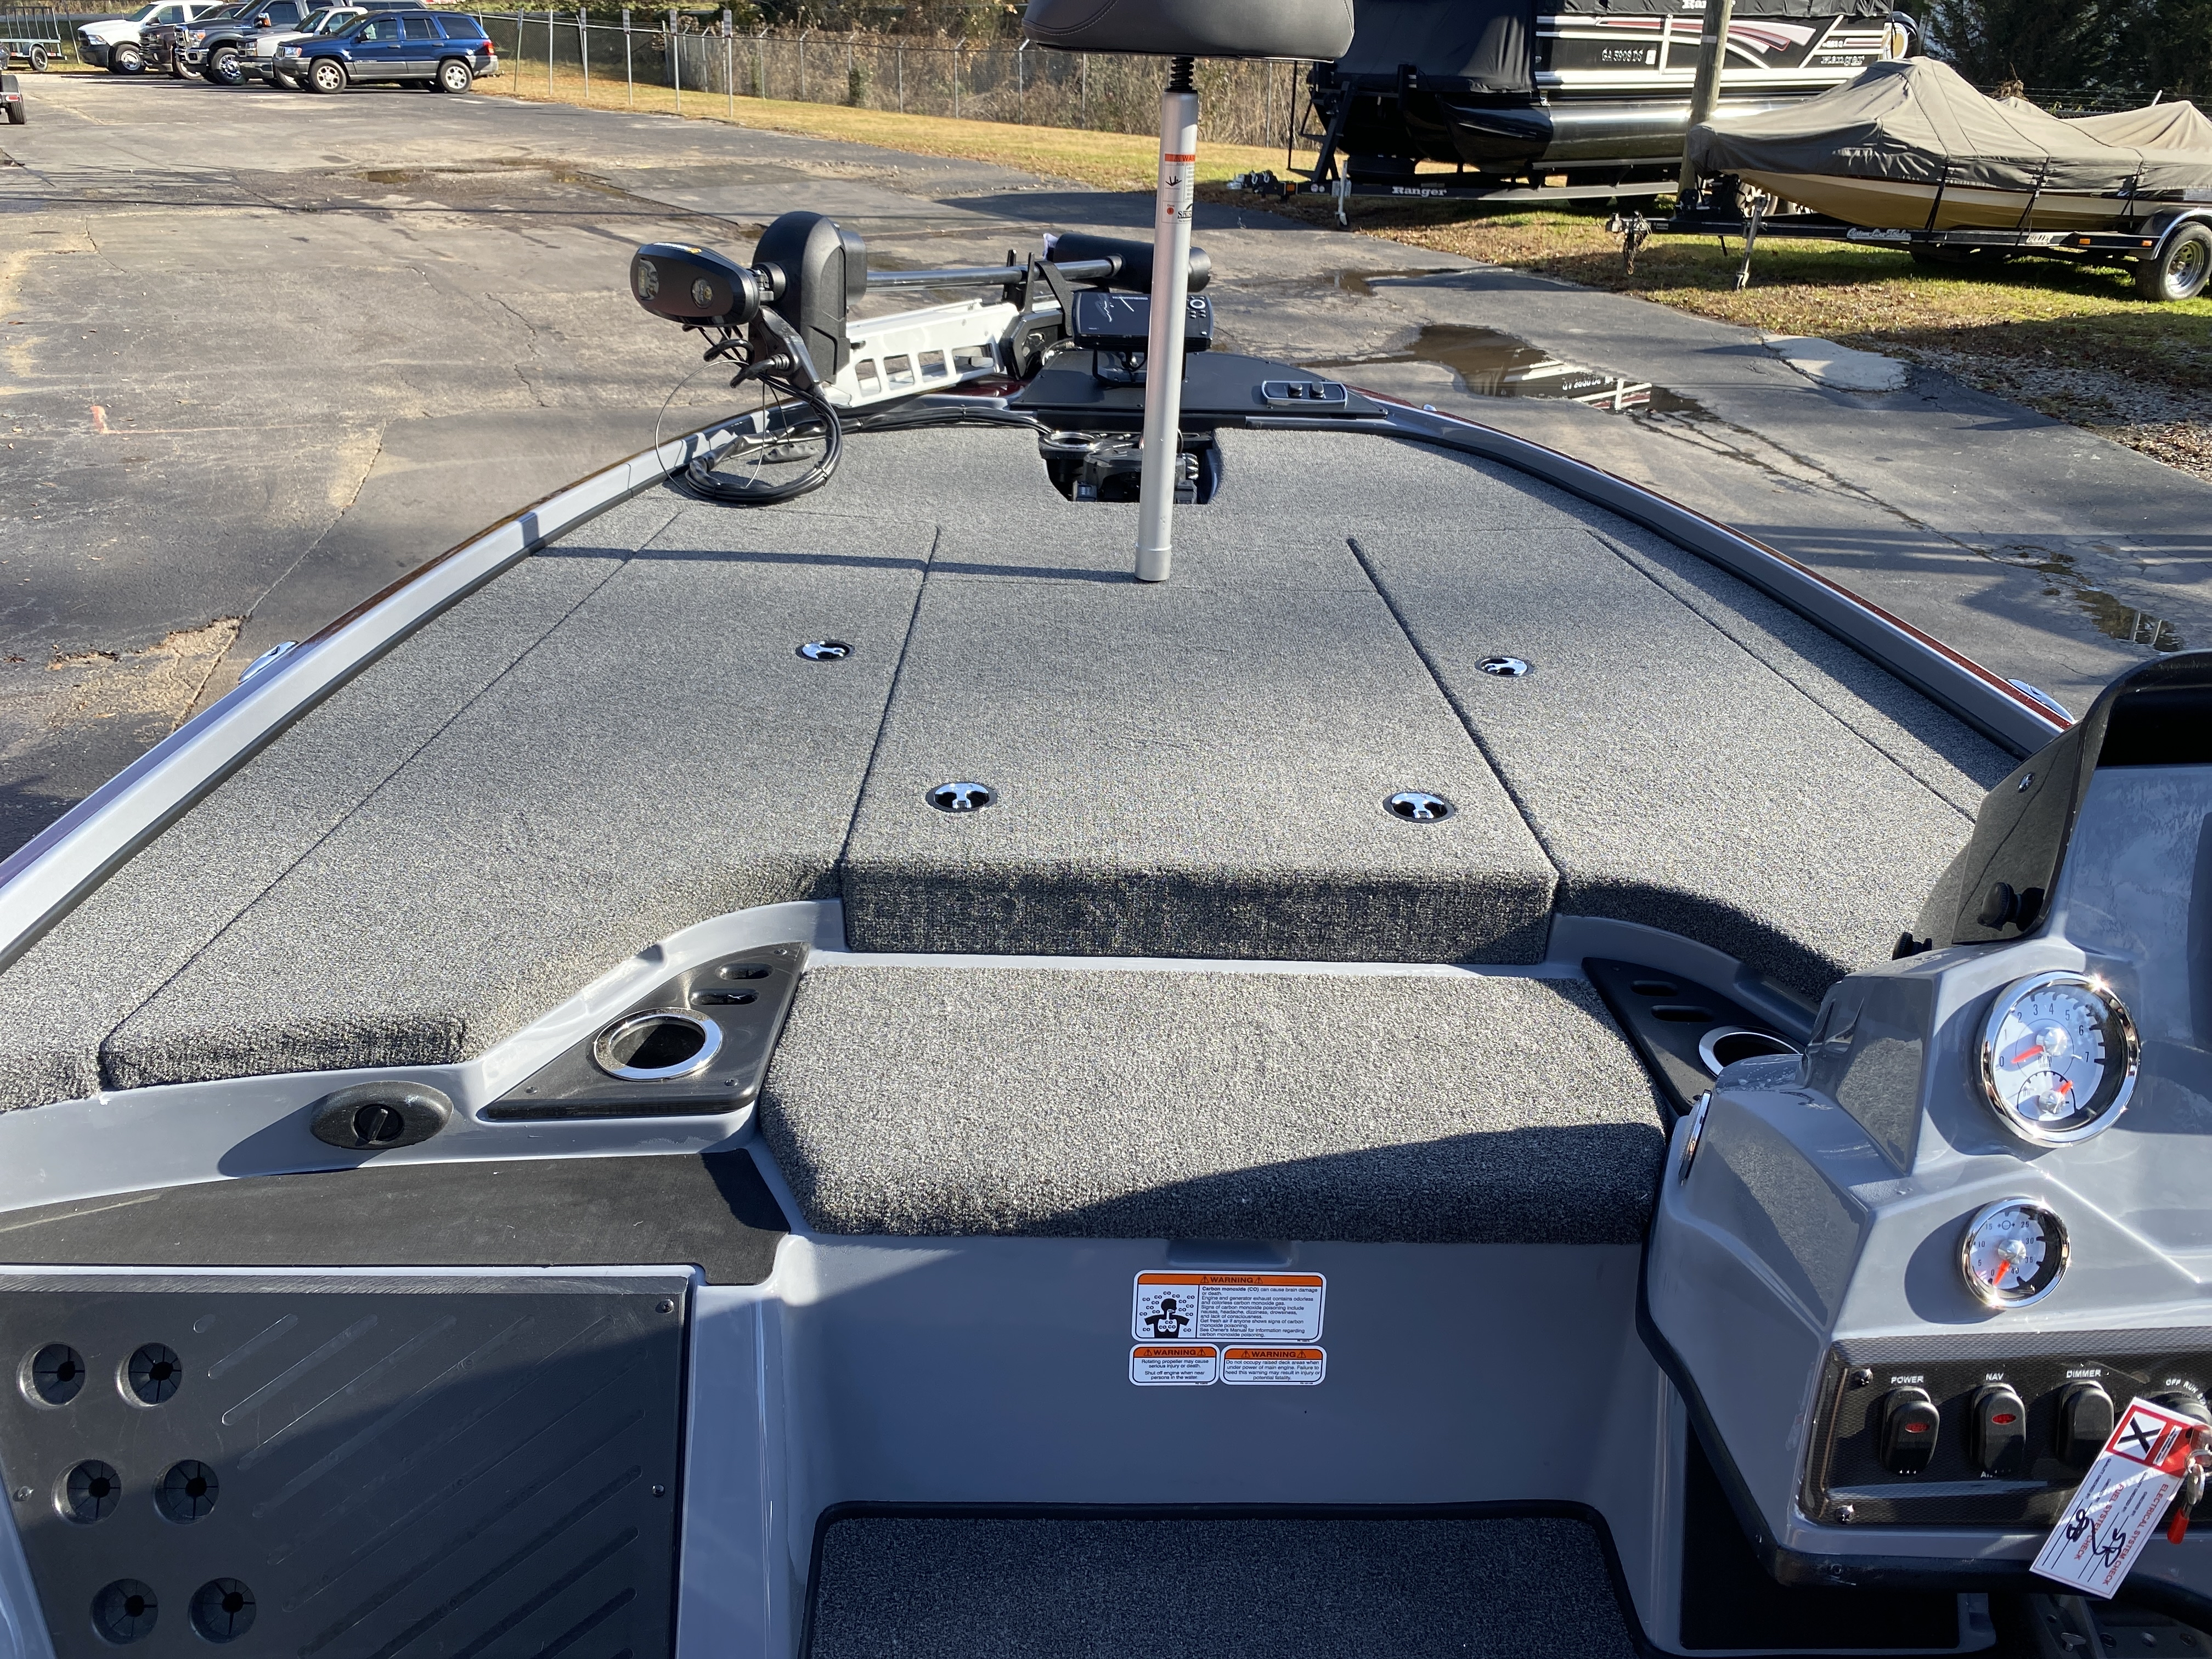 2021 Nitro boat for sale, model of the boat is Z18 H1 & Image # 11 of 28